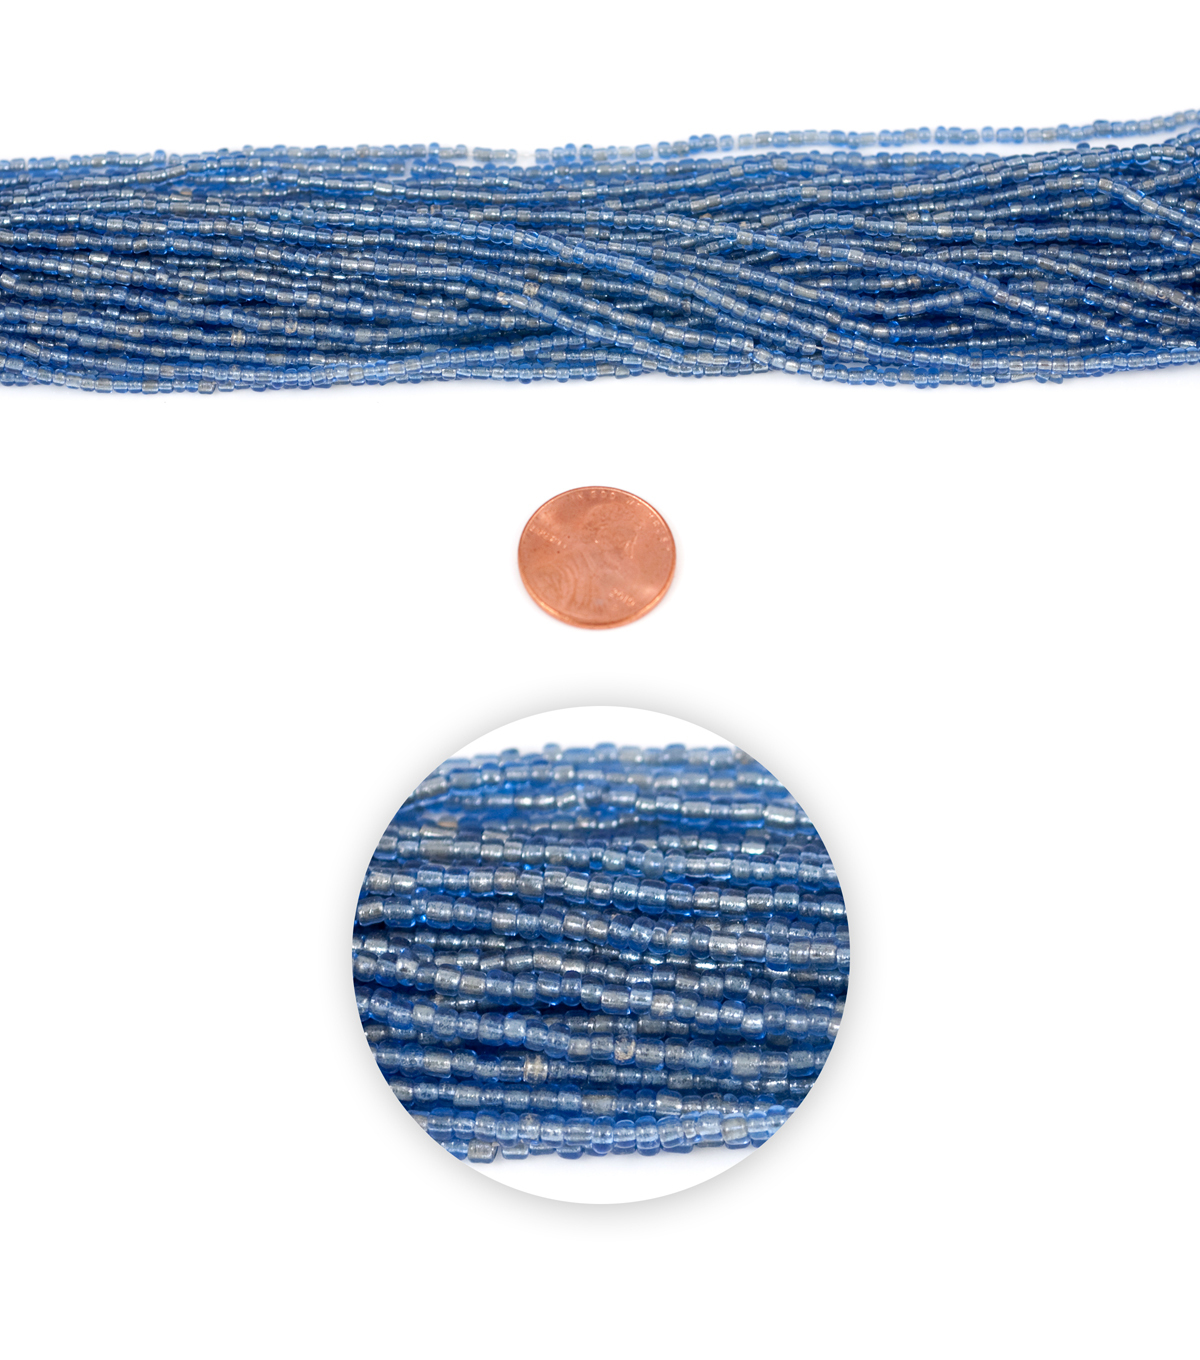 Blue Moon Strung Glass Seed Bead Hank,Dusty Blue